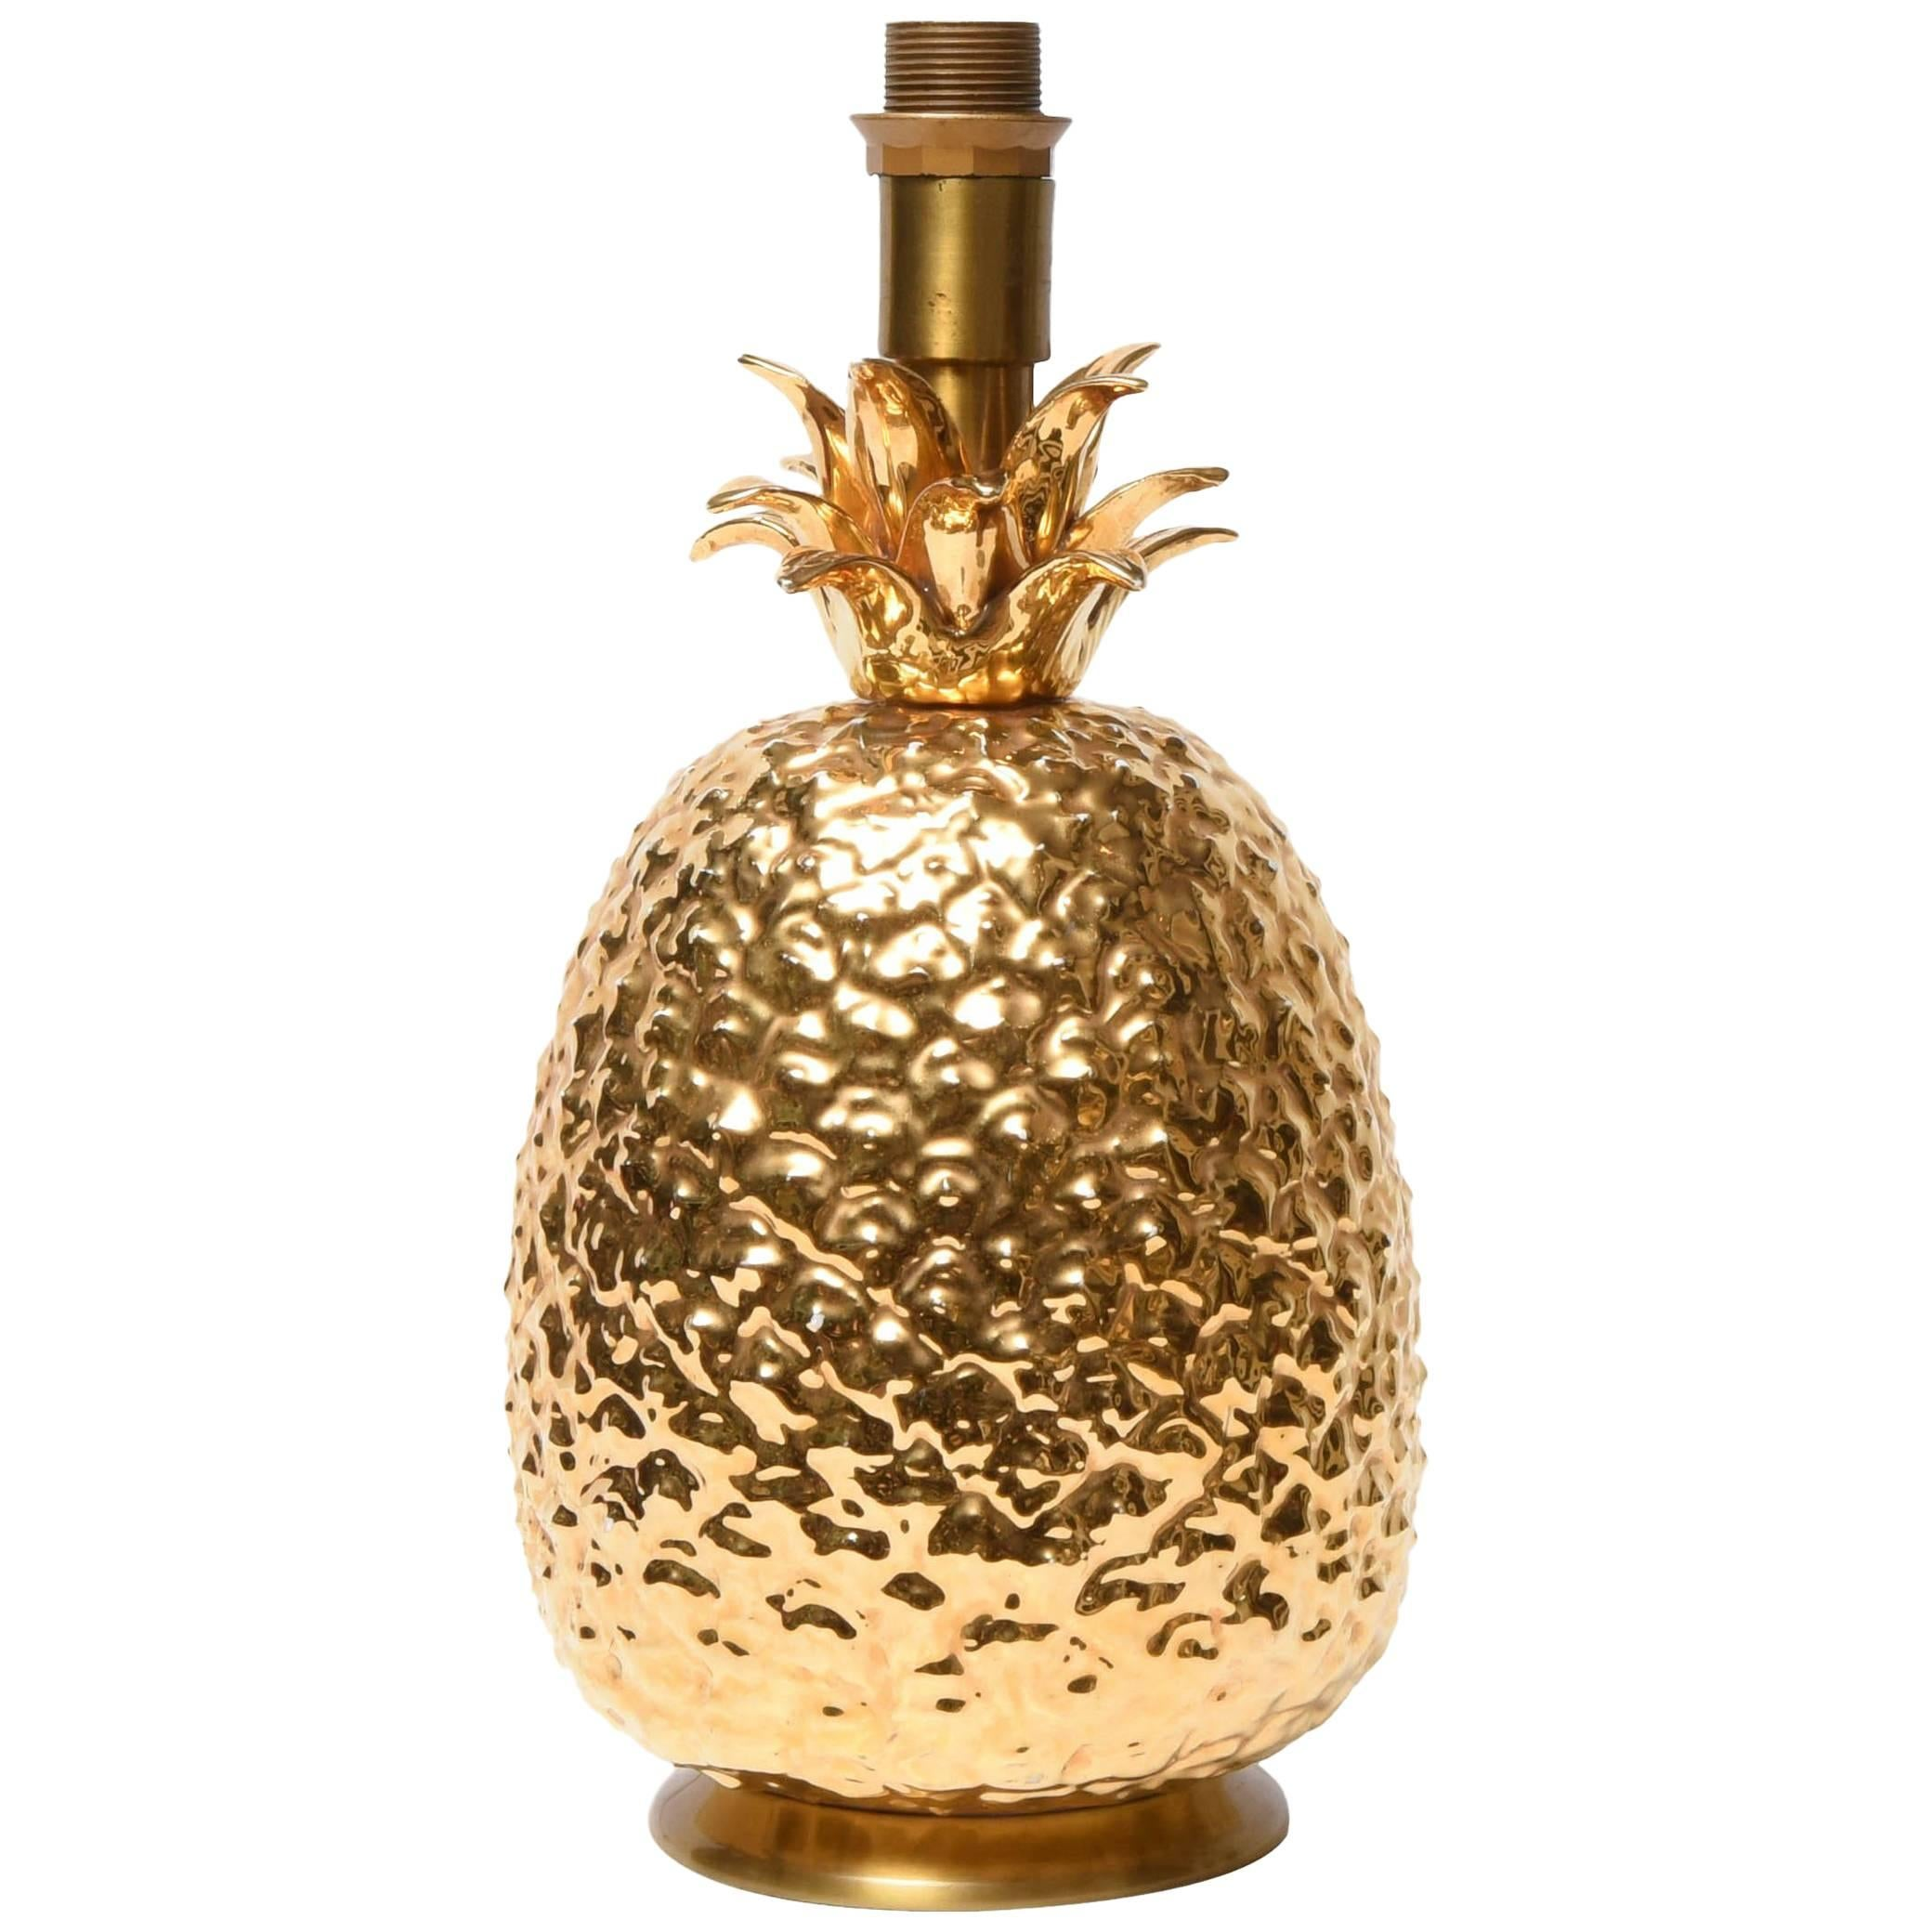 Captivating Gilded Ceramic Pineapple Table Lamp